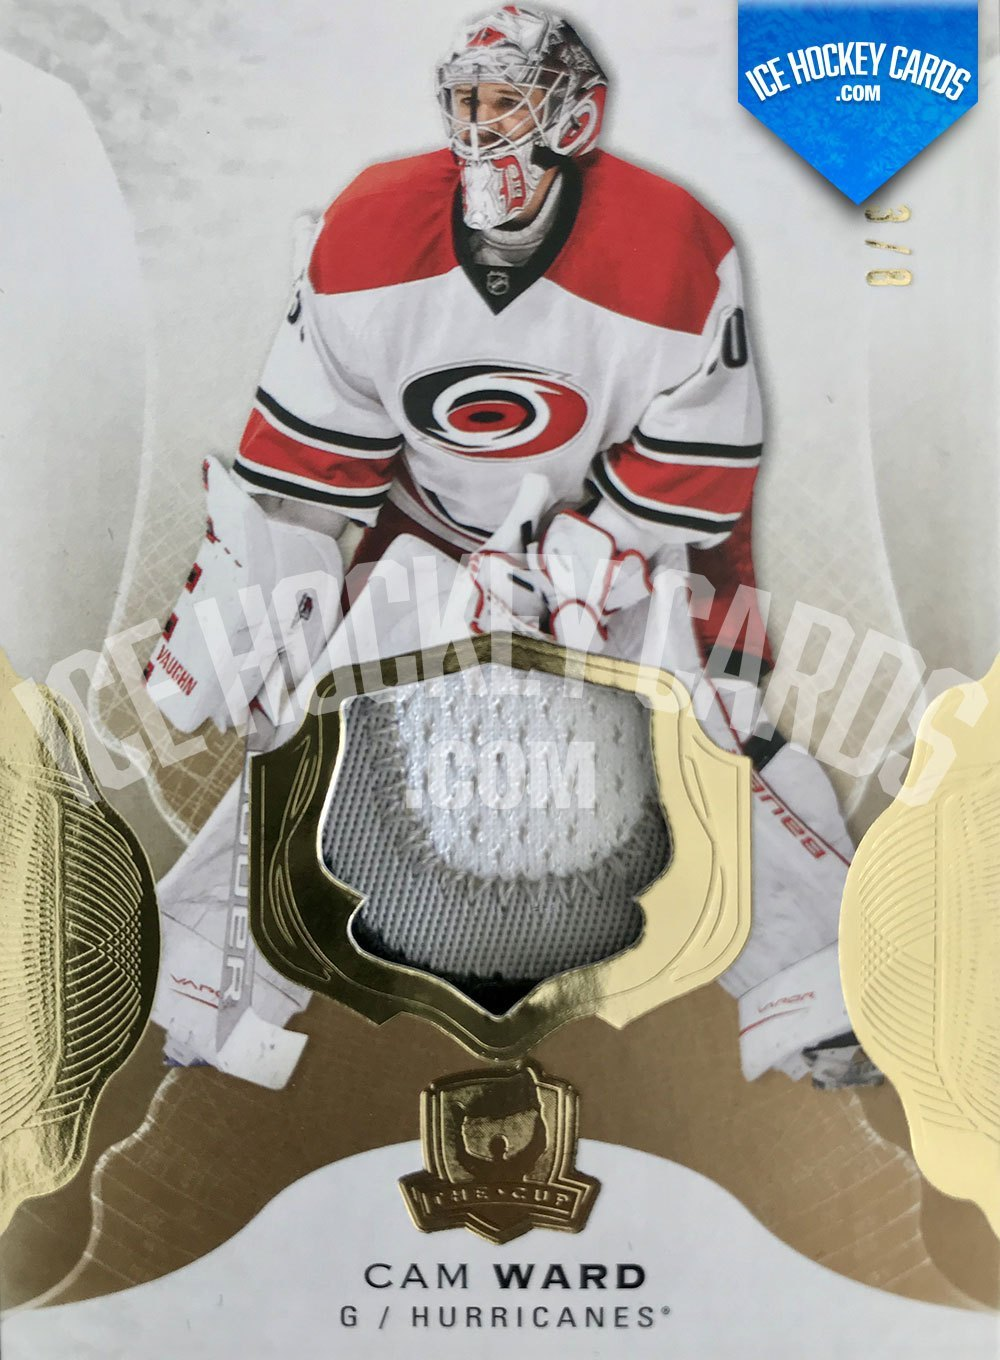 Upper Deck - The Cup 2016-17 - Cam Ward Premium Patch Card # to 8 RARE